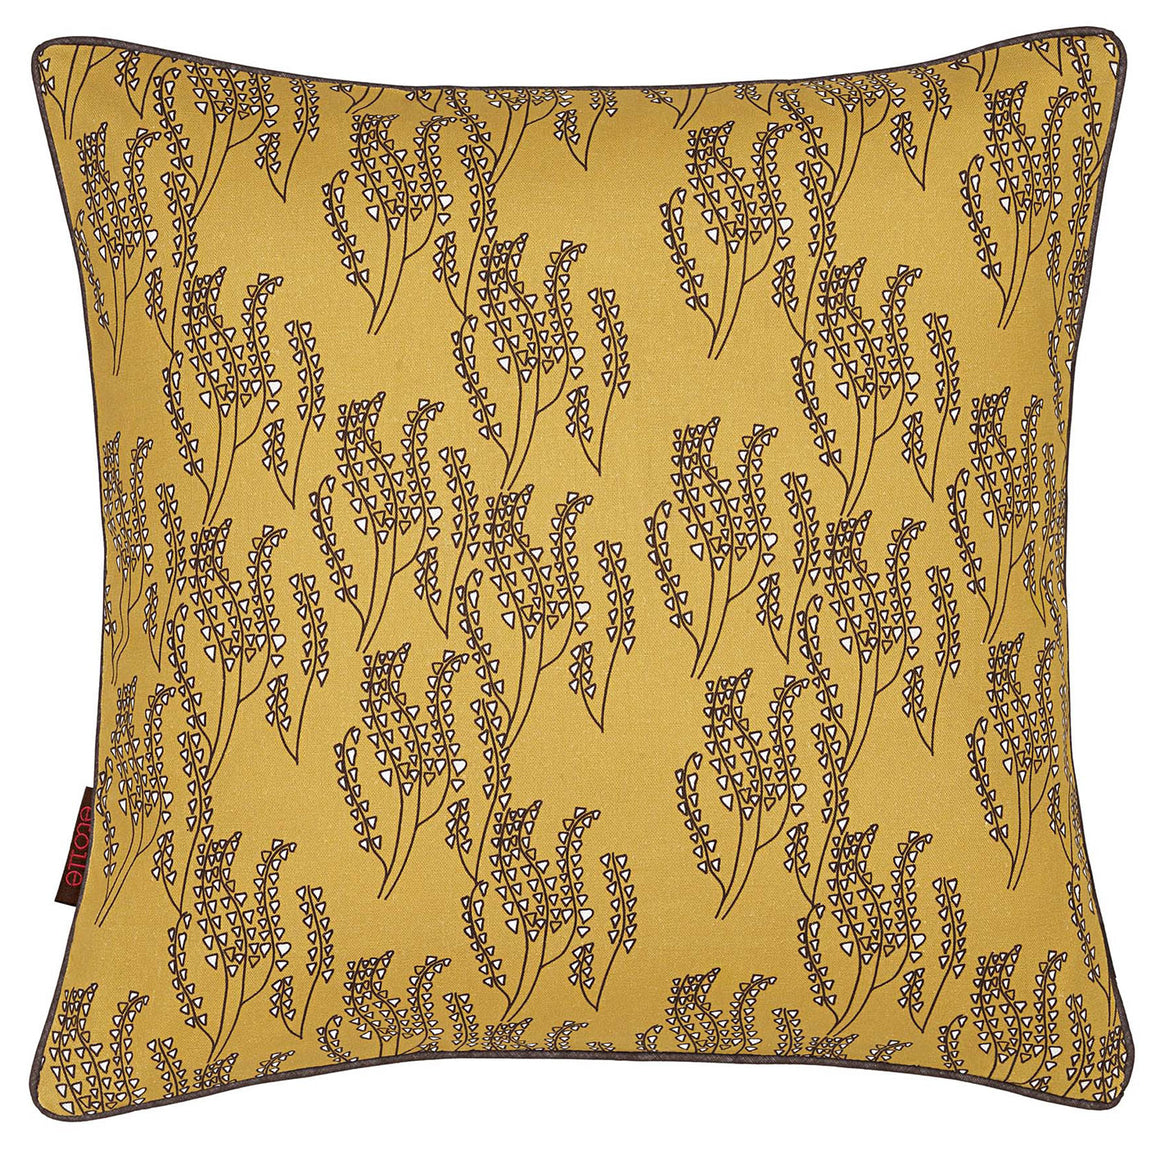 "Graphic Grass Pattern Maricopa Decorative Throw Pillow - Gold 45x45cm (18x18"")"